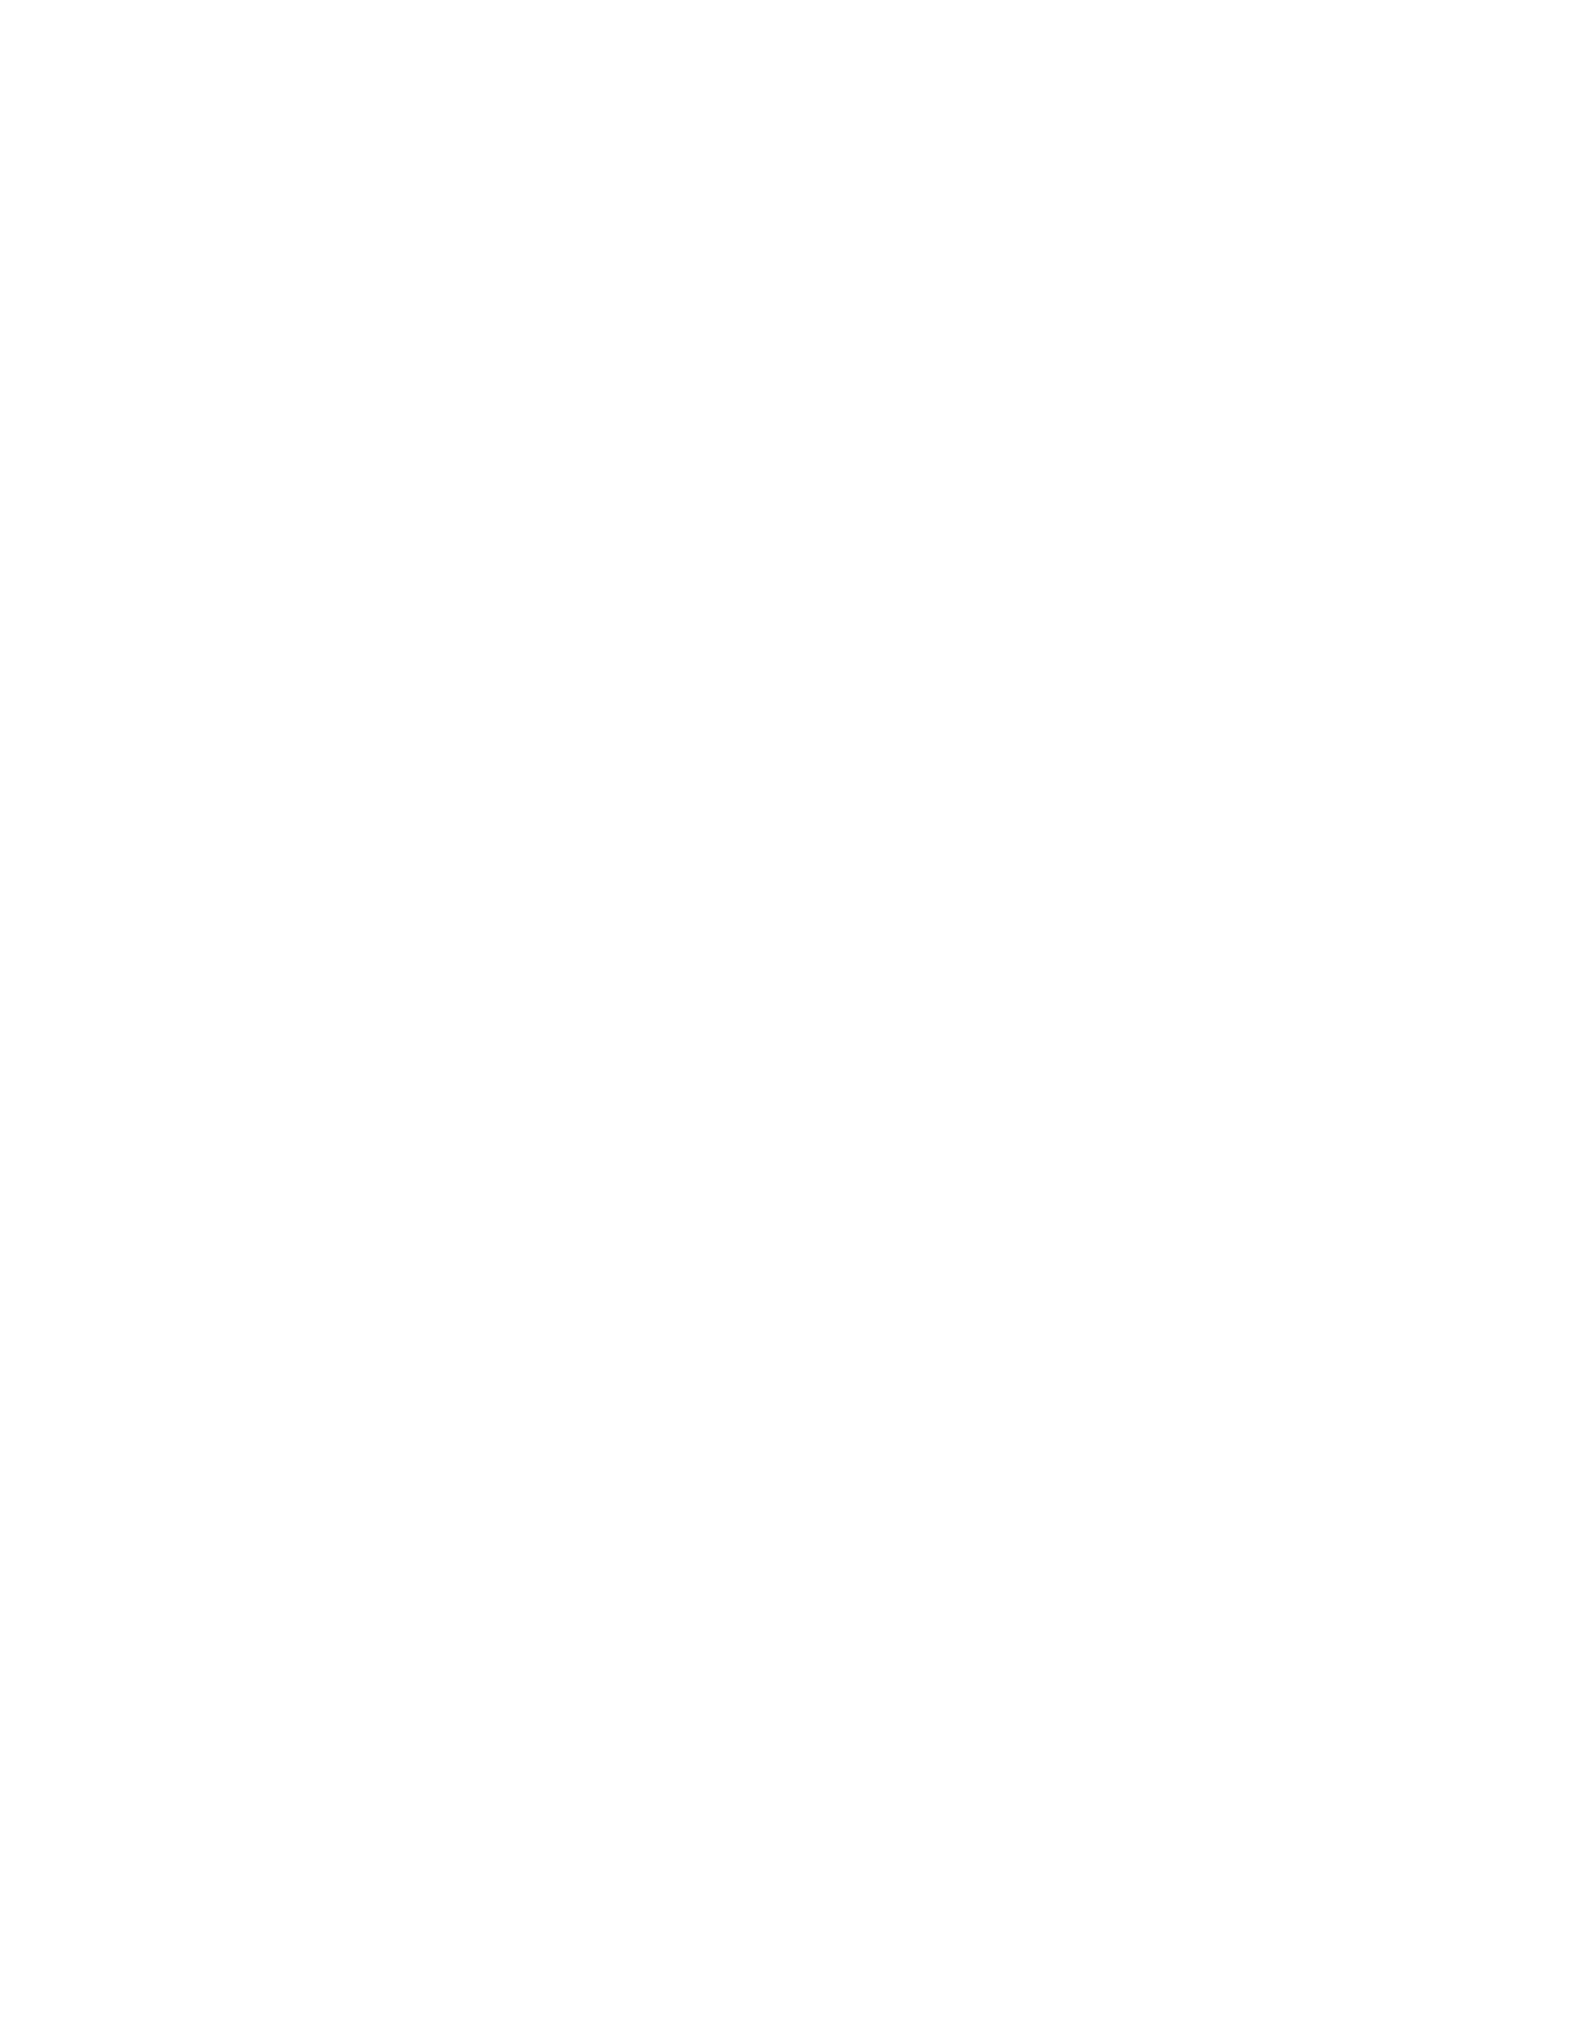 Nails & Fashion by Yesmani